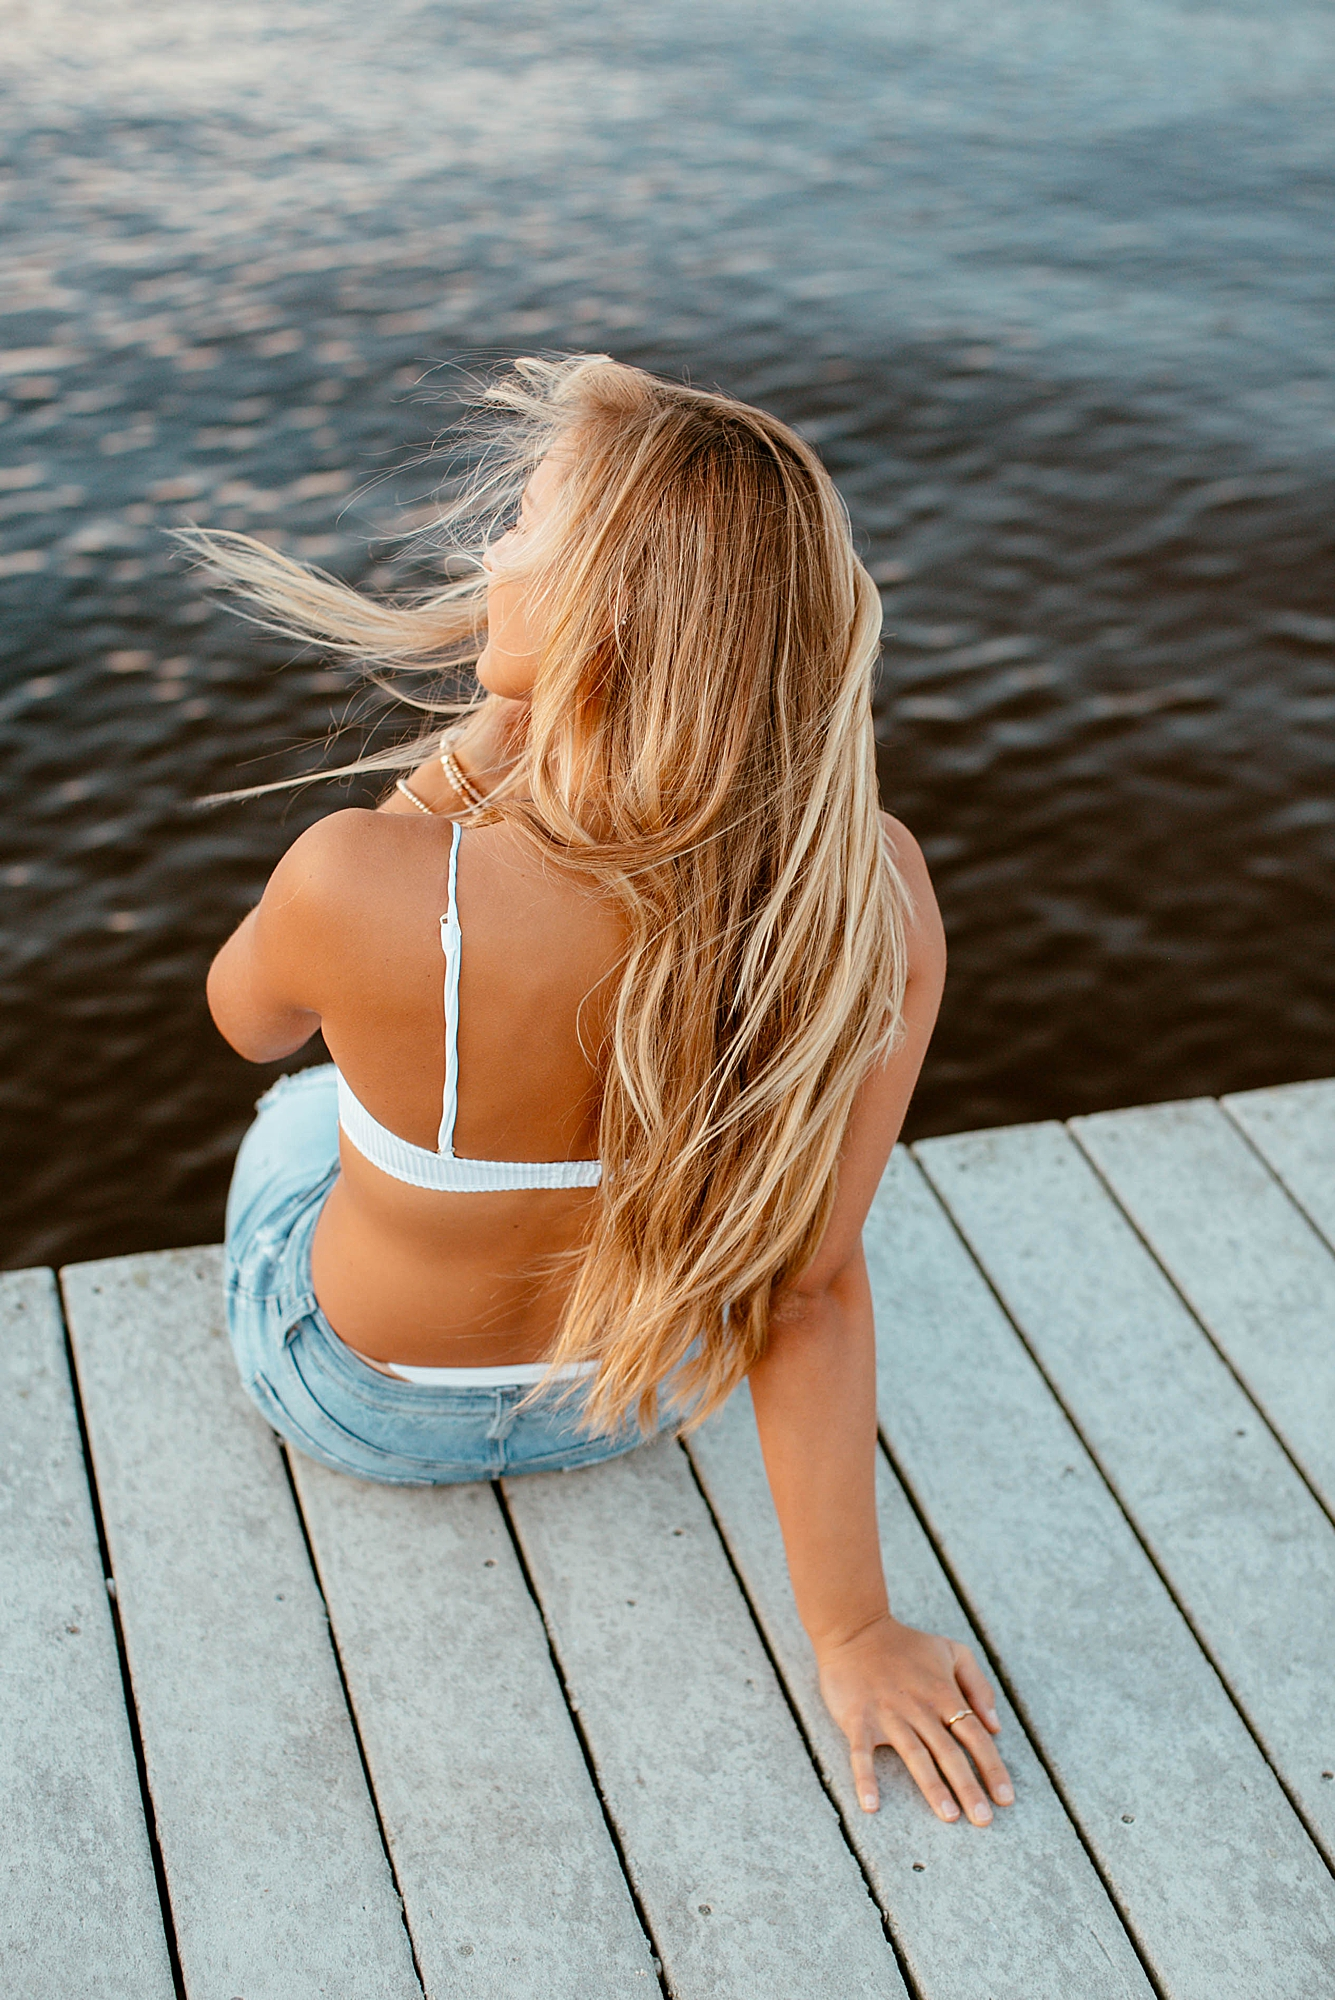 Natural and Bright Seaside Park New Jersey Boho Lifestlyle Beach Portrait Photography by Kelee Bovelle_0036.jpg